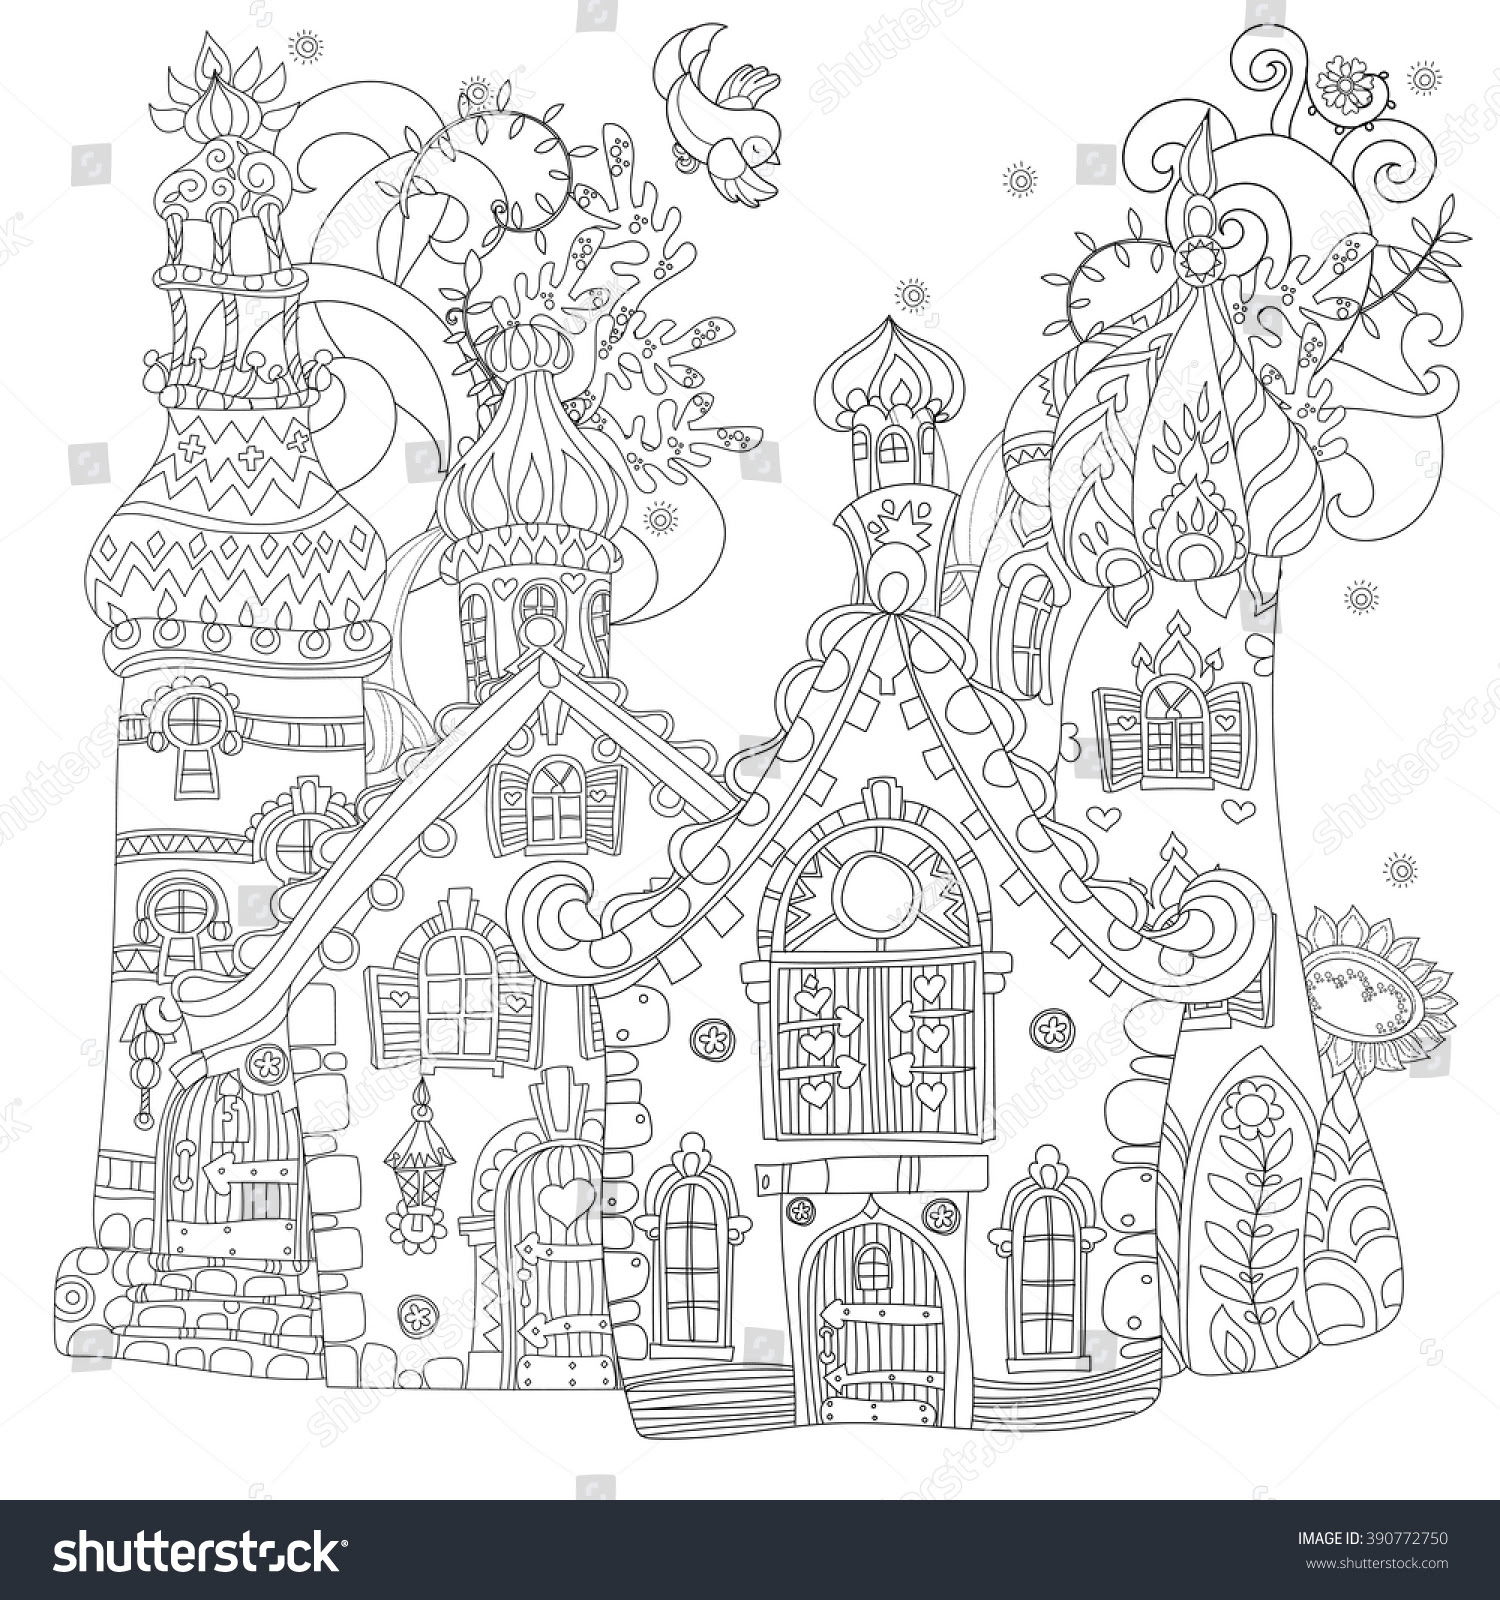 Vector Cute Fairy Tale Town Doodlevector Stock Vector ...